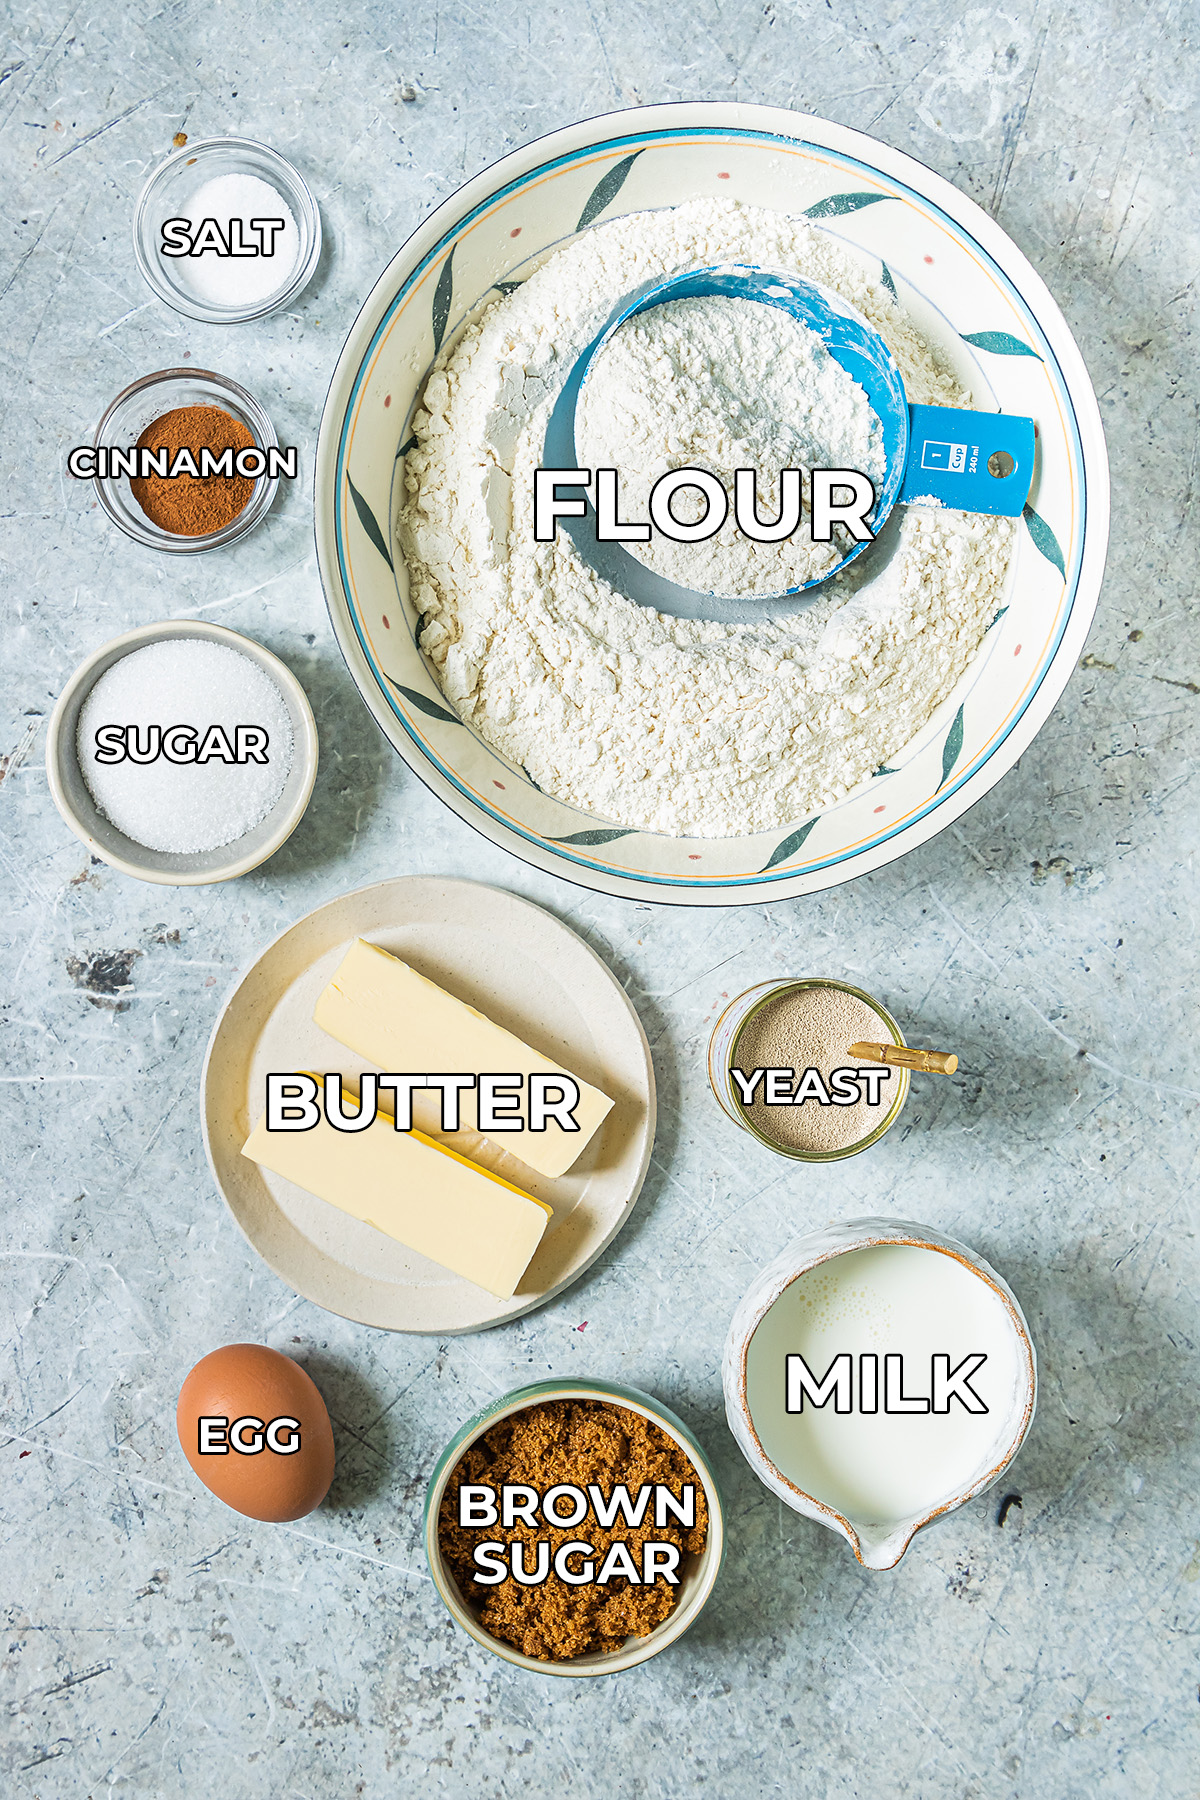 cinnamon roll ingredients spread out on a counter in individual bowls